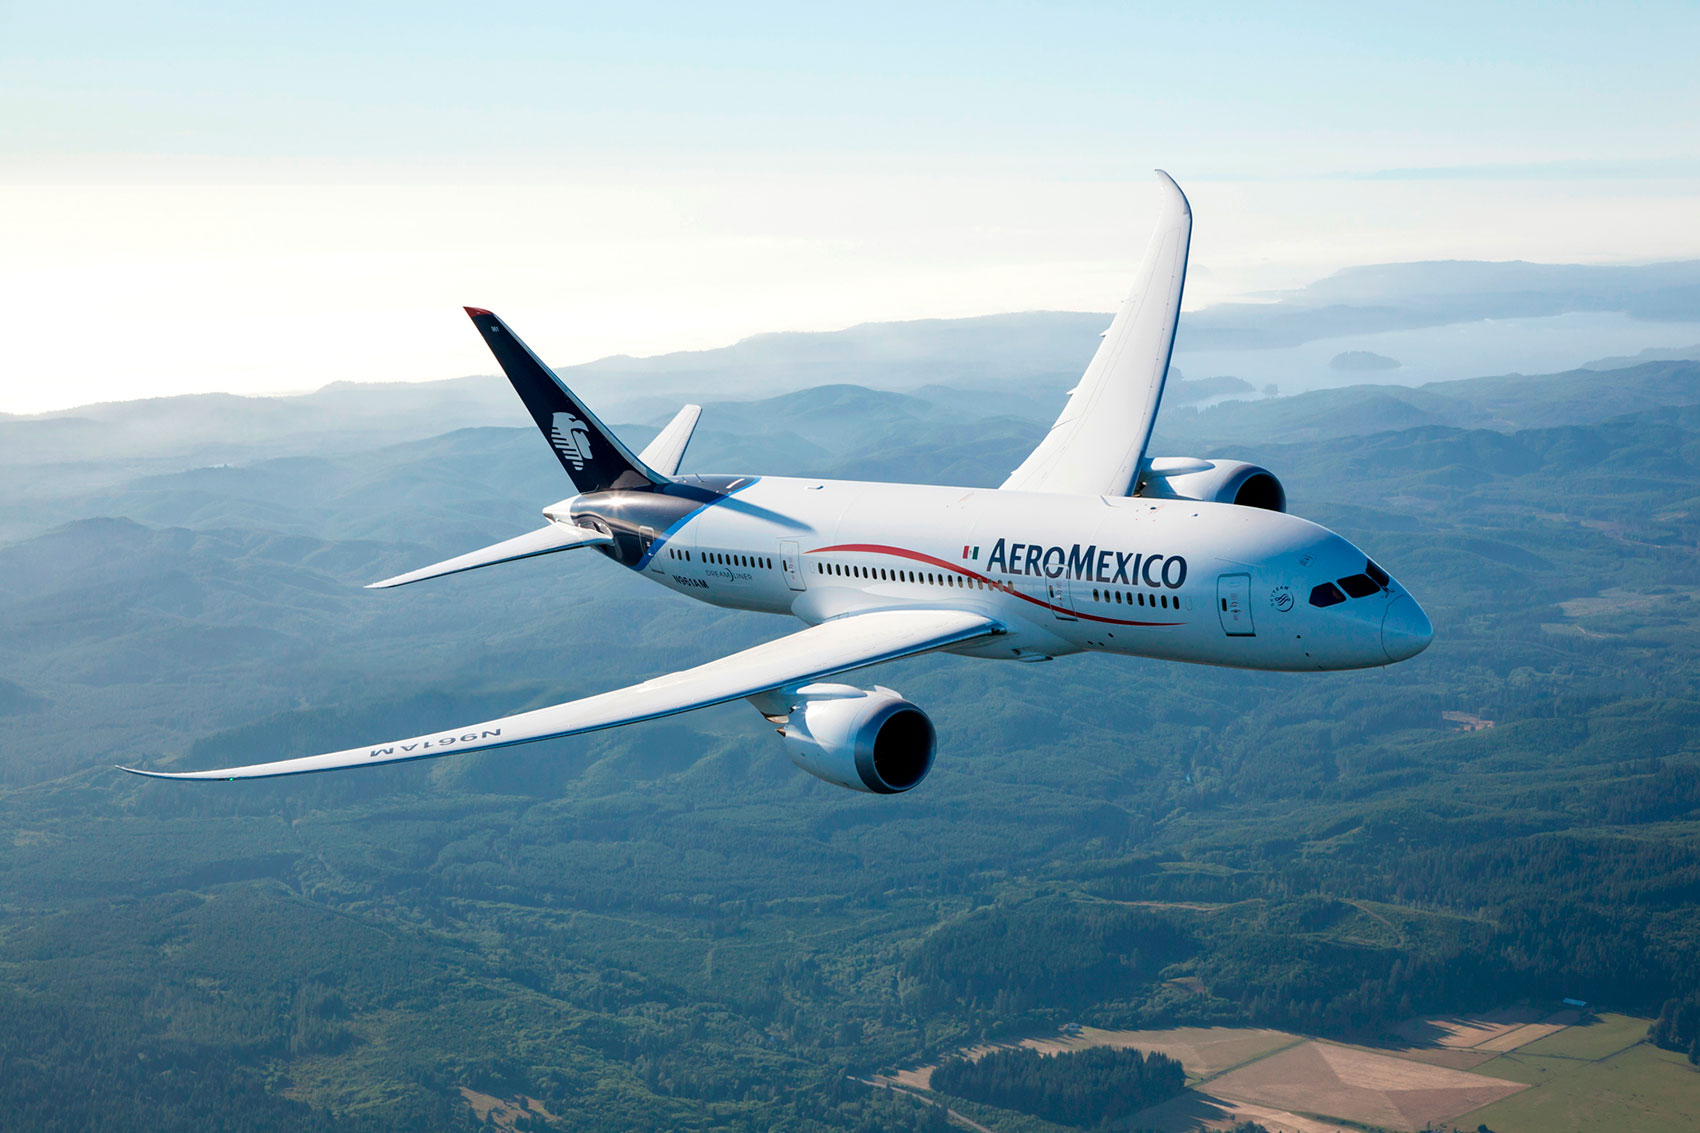 Gran-Plan-Aeroméxico-Home-Office